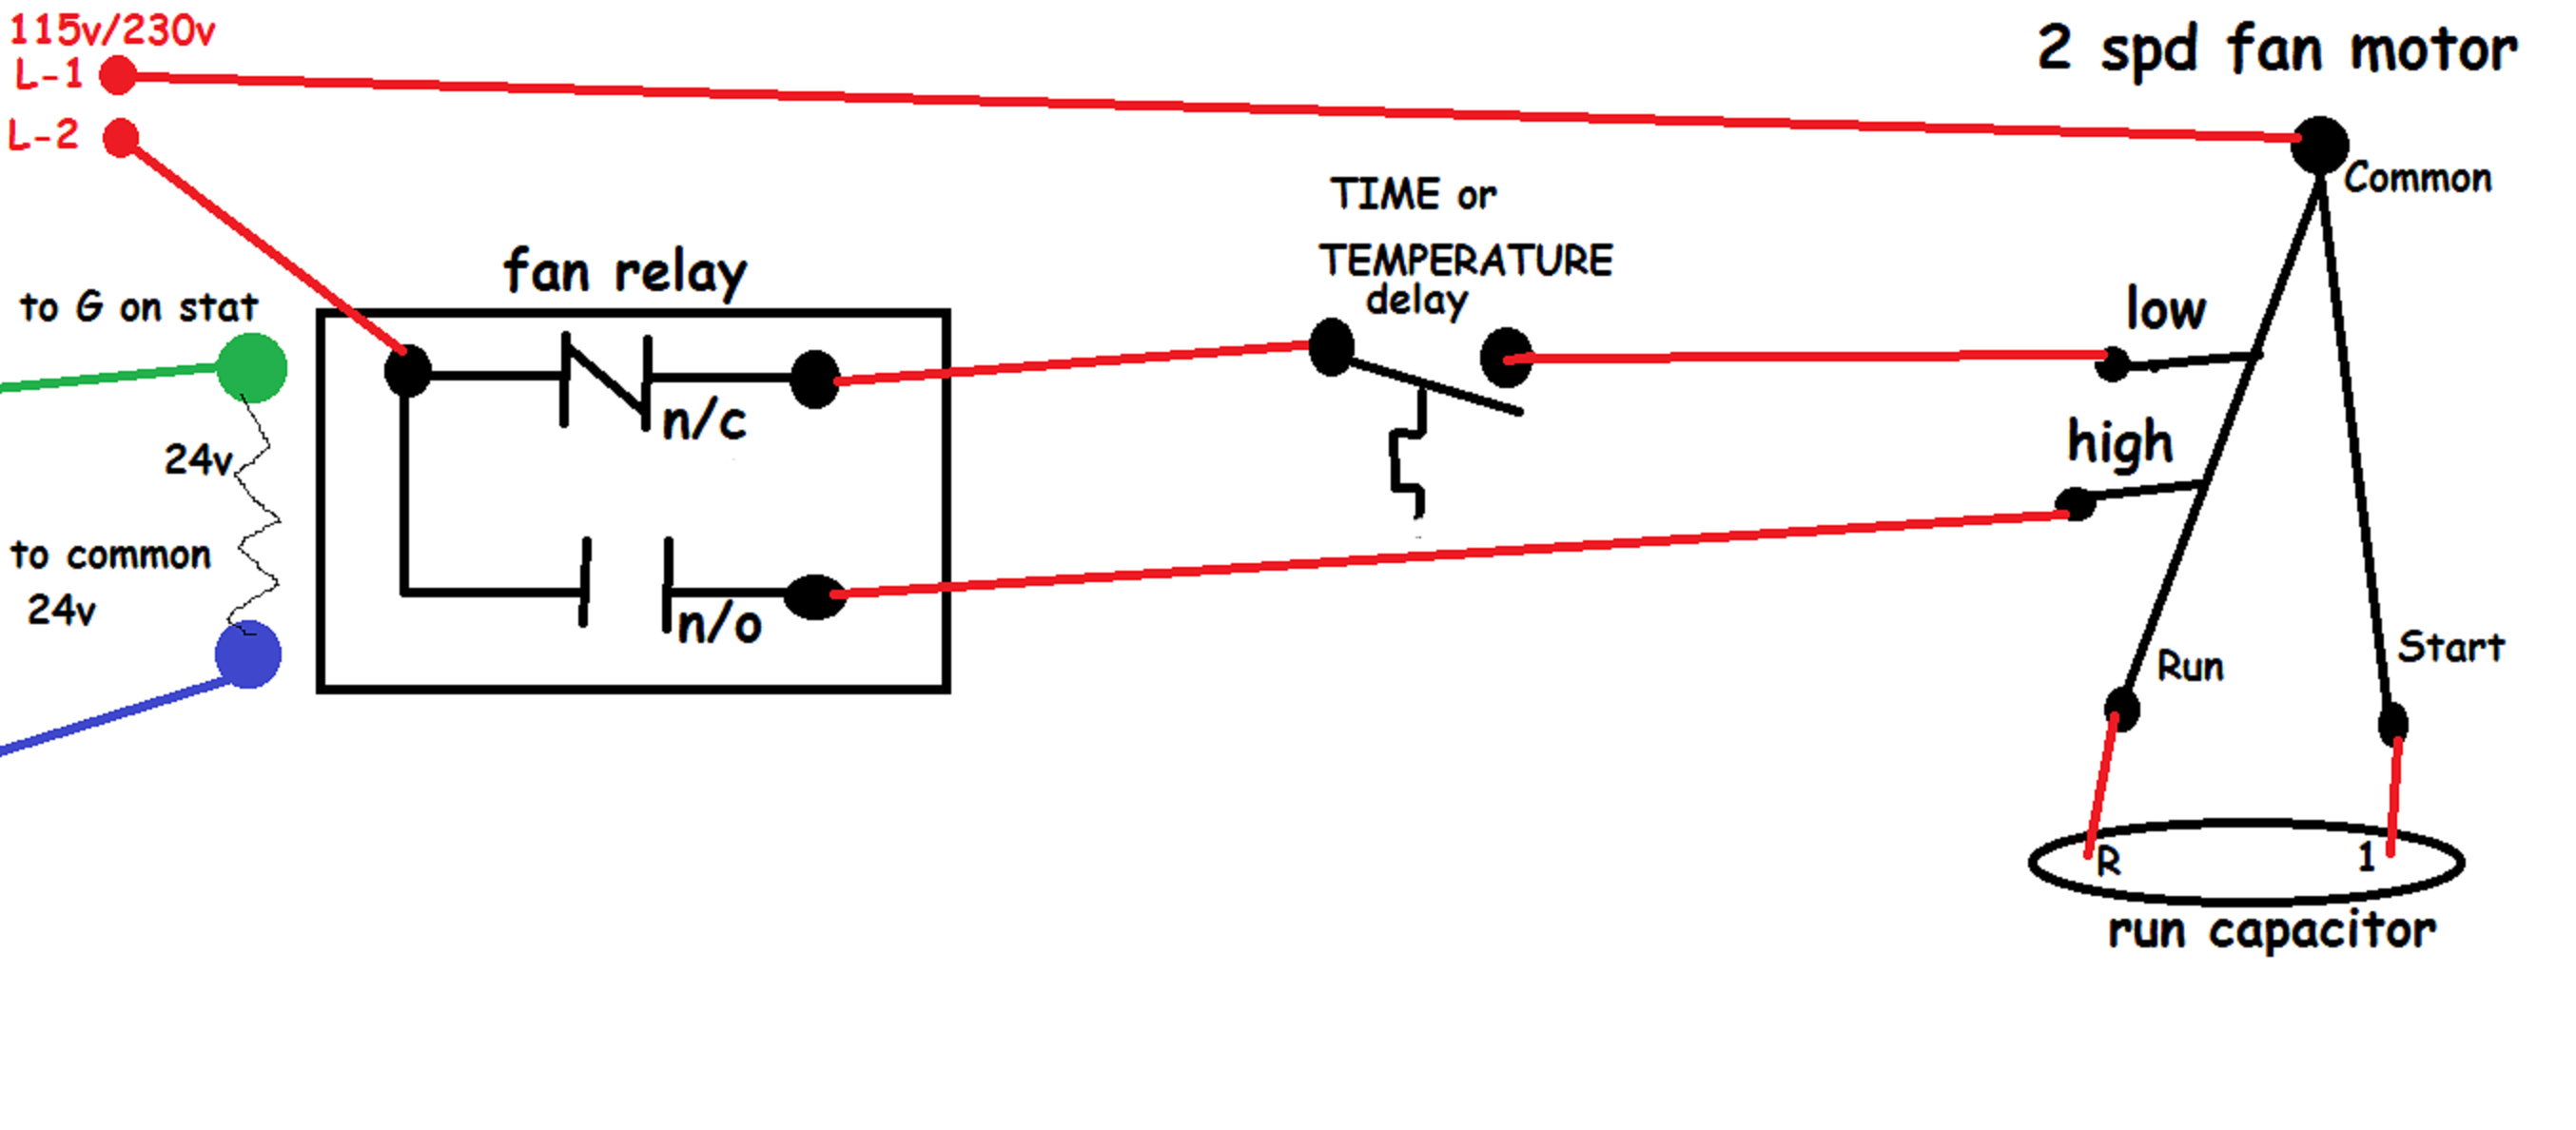 small resolution of unique fan relay wiring diagram hvac diagram diagramsampleunique fan relay wiring diagram hvac diagram diagramsample diagramtemplate